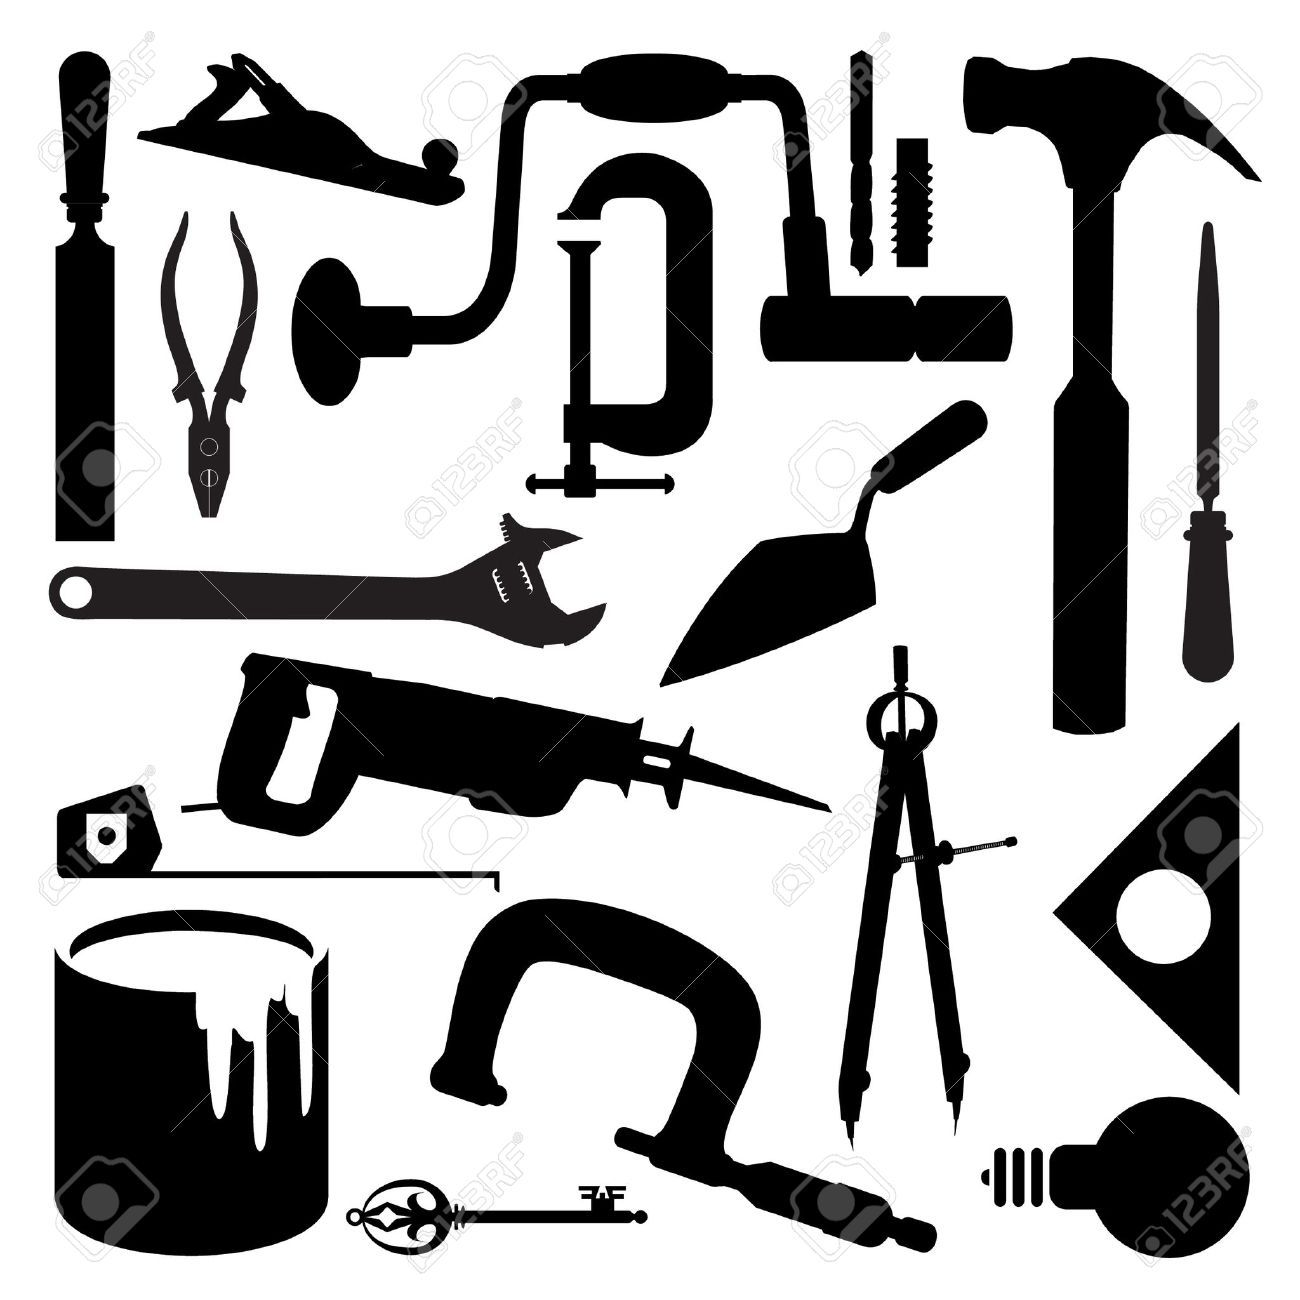 Woodworking Tool Silhouettes Google Search Tool Silhouettes